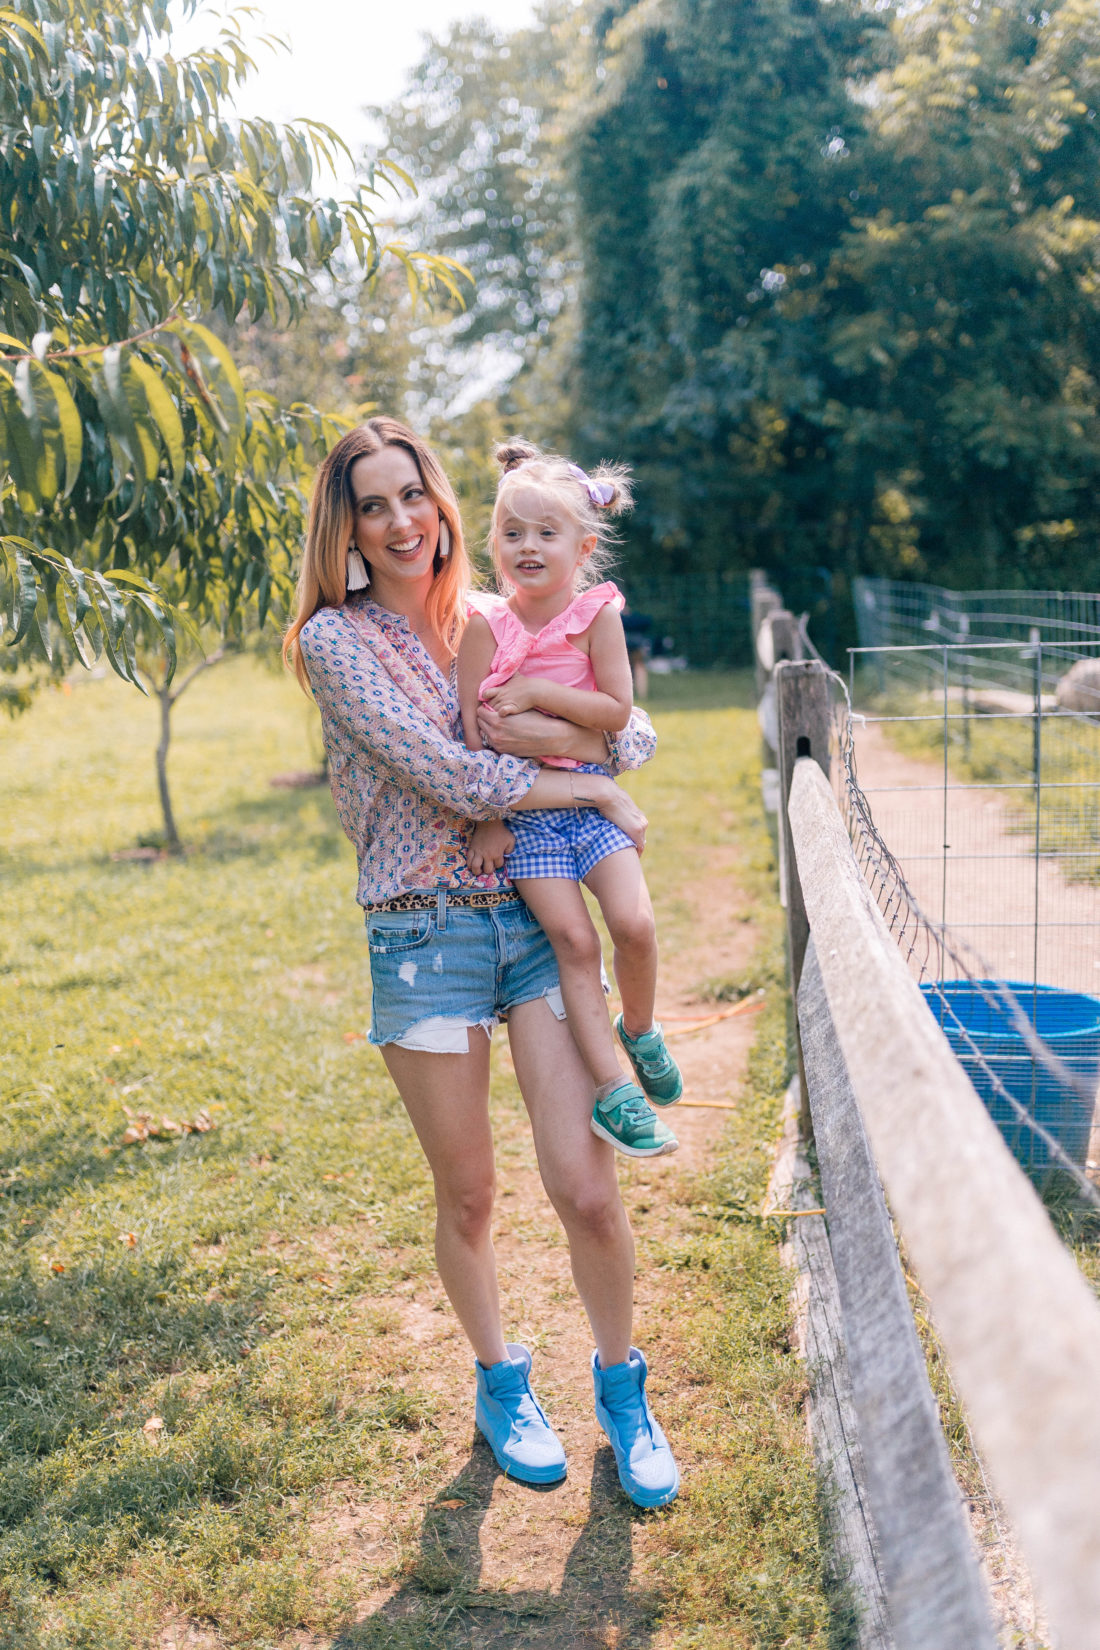 Eva Amurri Martino wears denim cutoffs and a silk shirt, and carries Marlowe Martino in her arms through the fields of a local connecticut farm